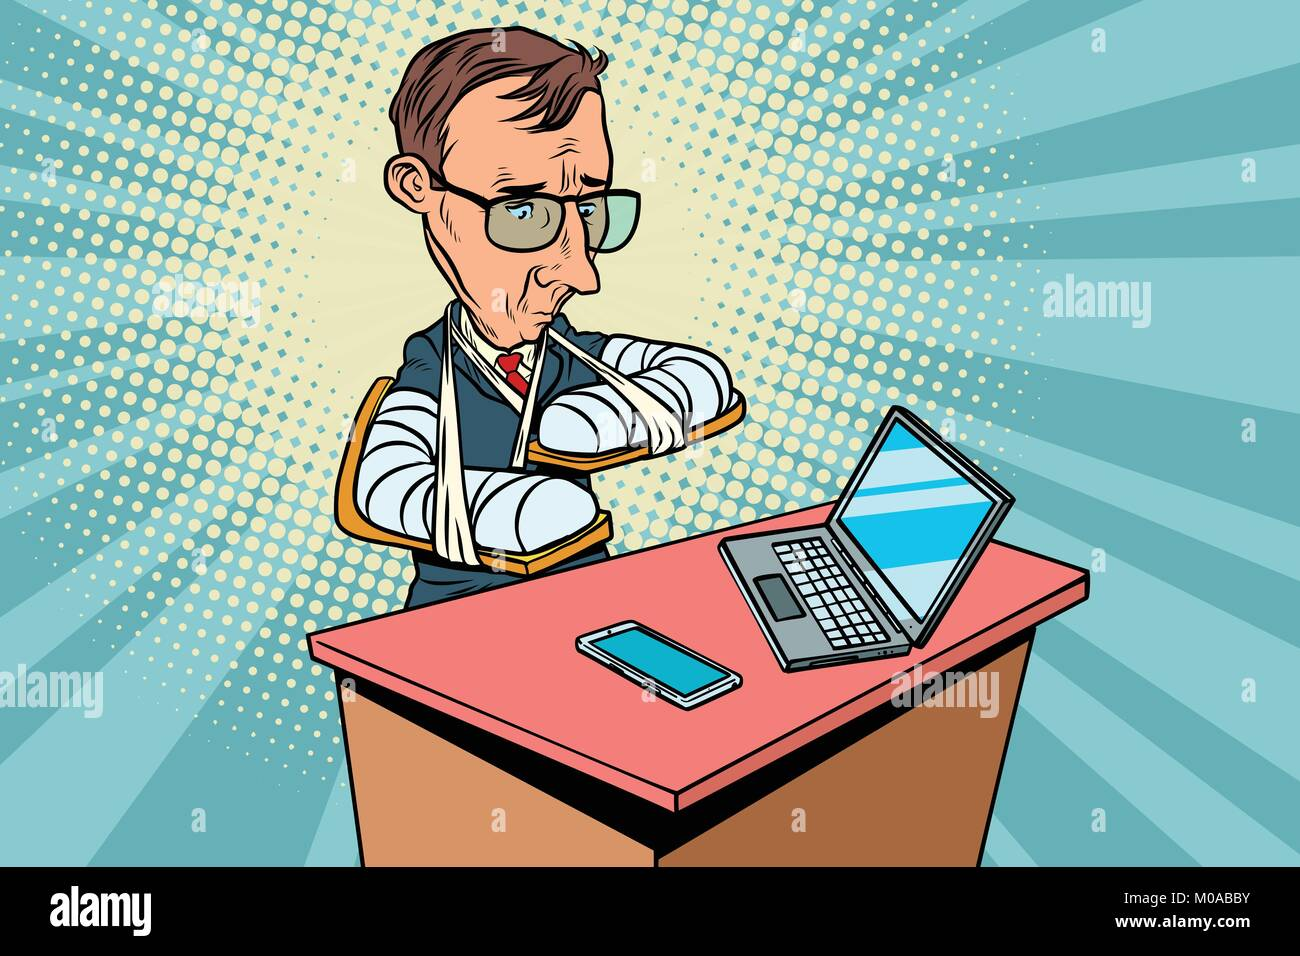 People with broken arms and gadgets. voice assistant. Comic book cartoon pop art retro drawing illustration - Stock Image